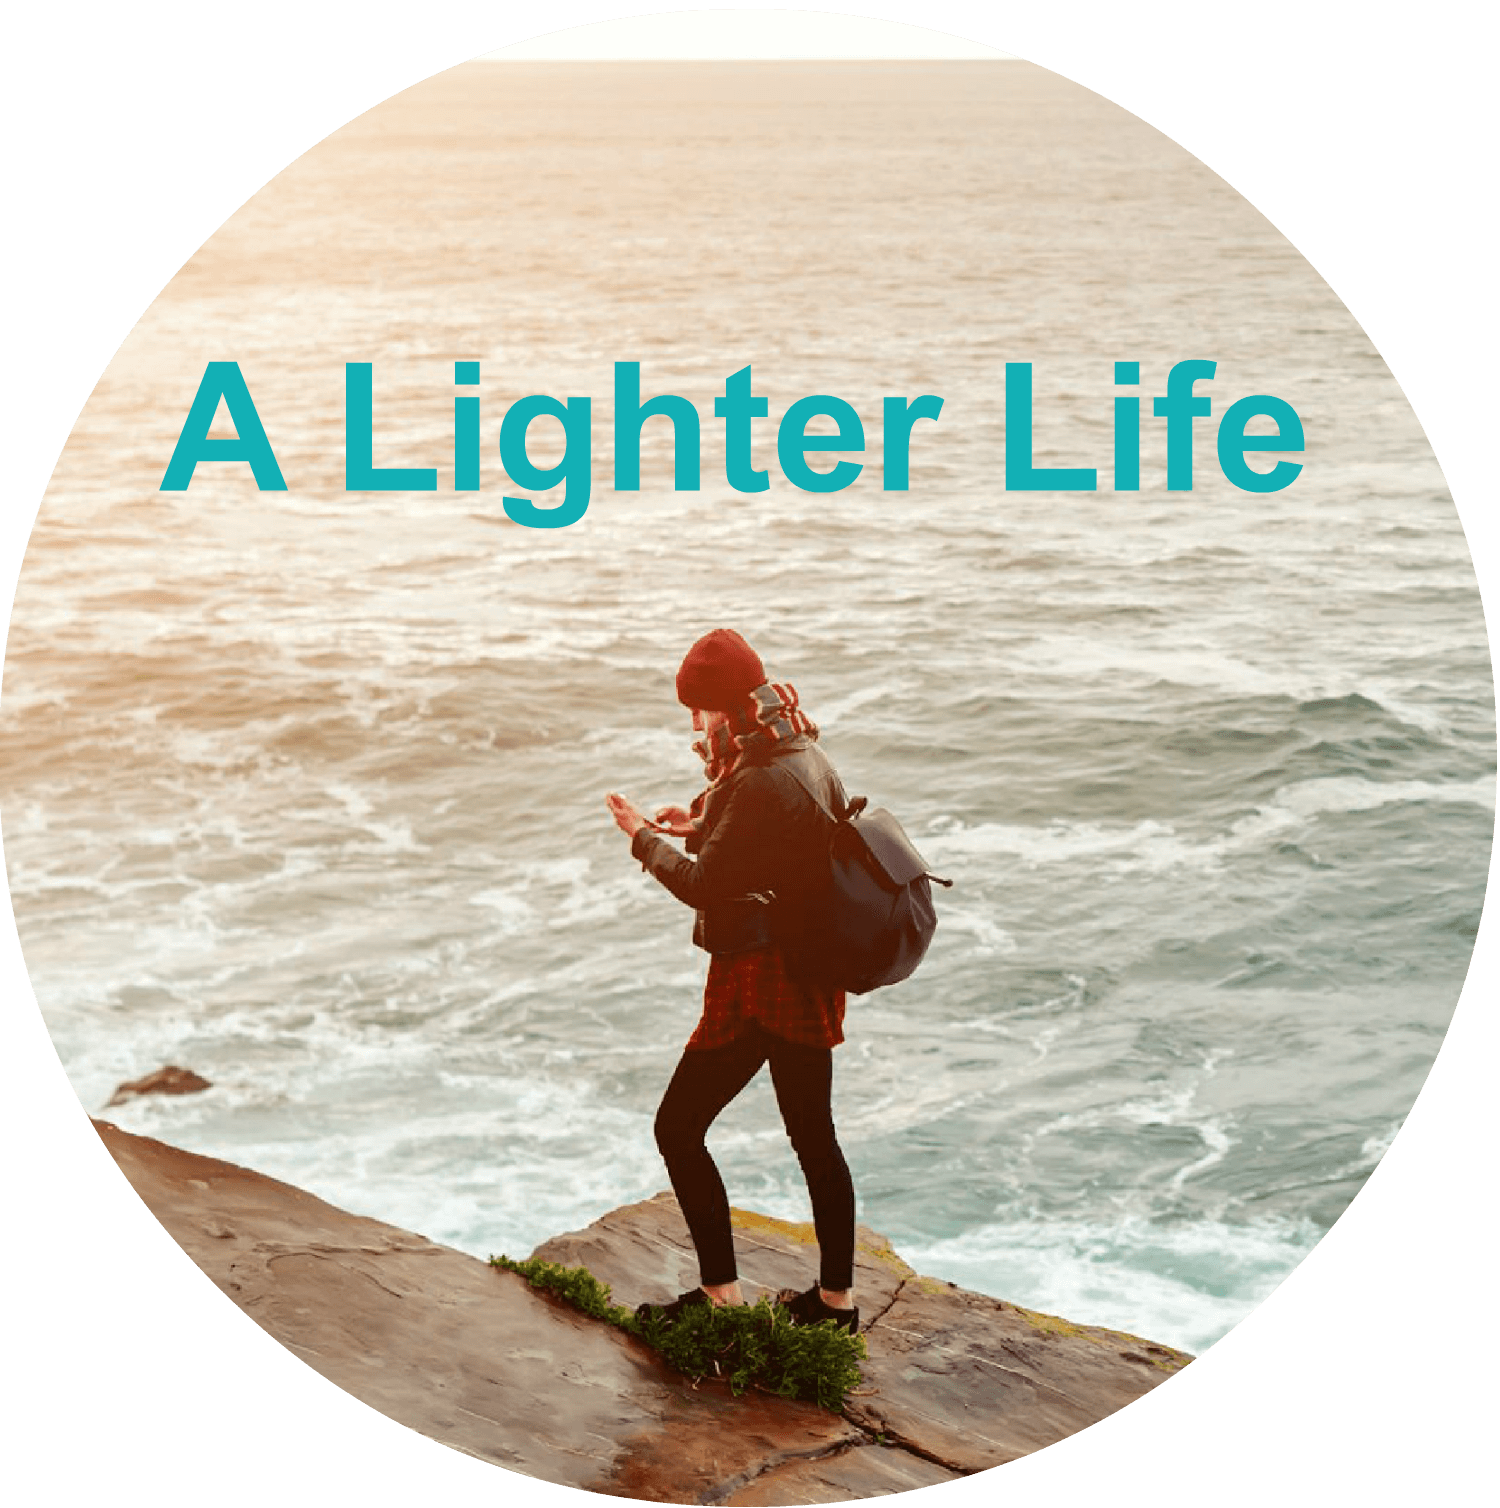 a lighter life product image